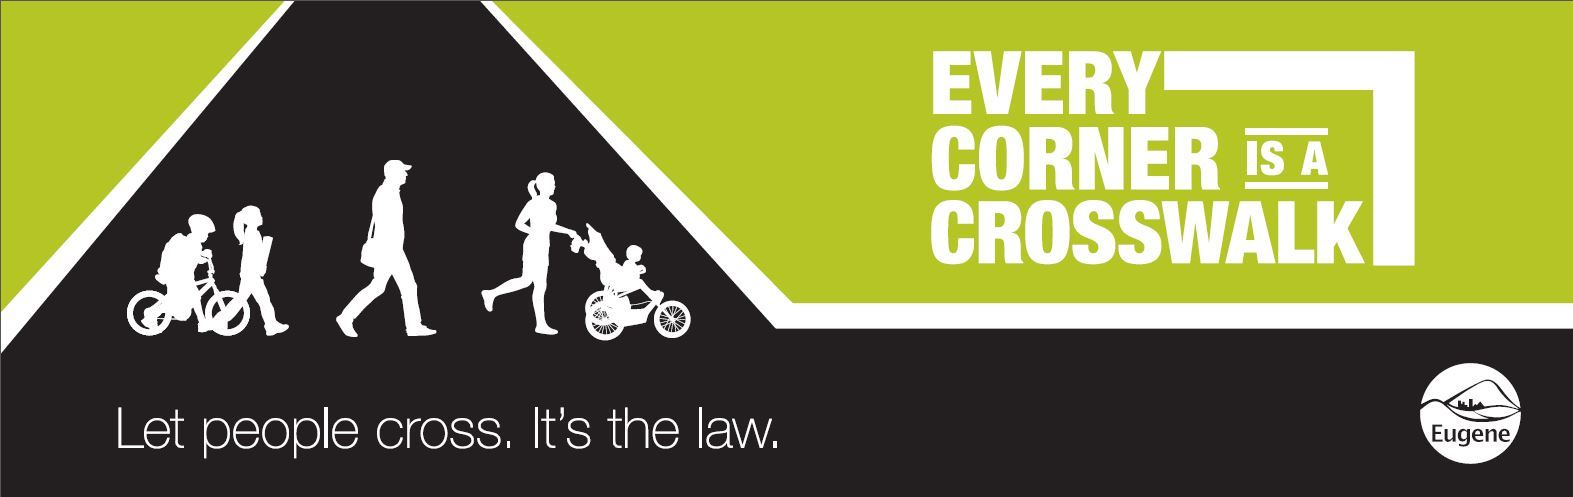 Every Corner is a Crosswalk Logo